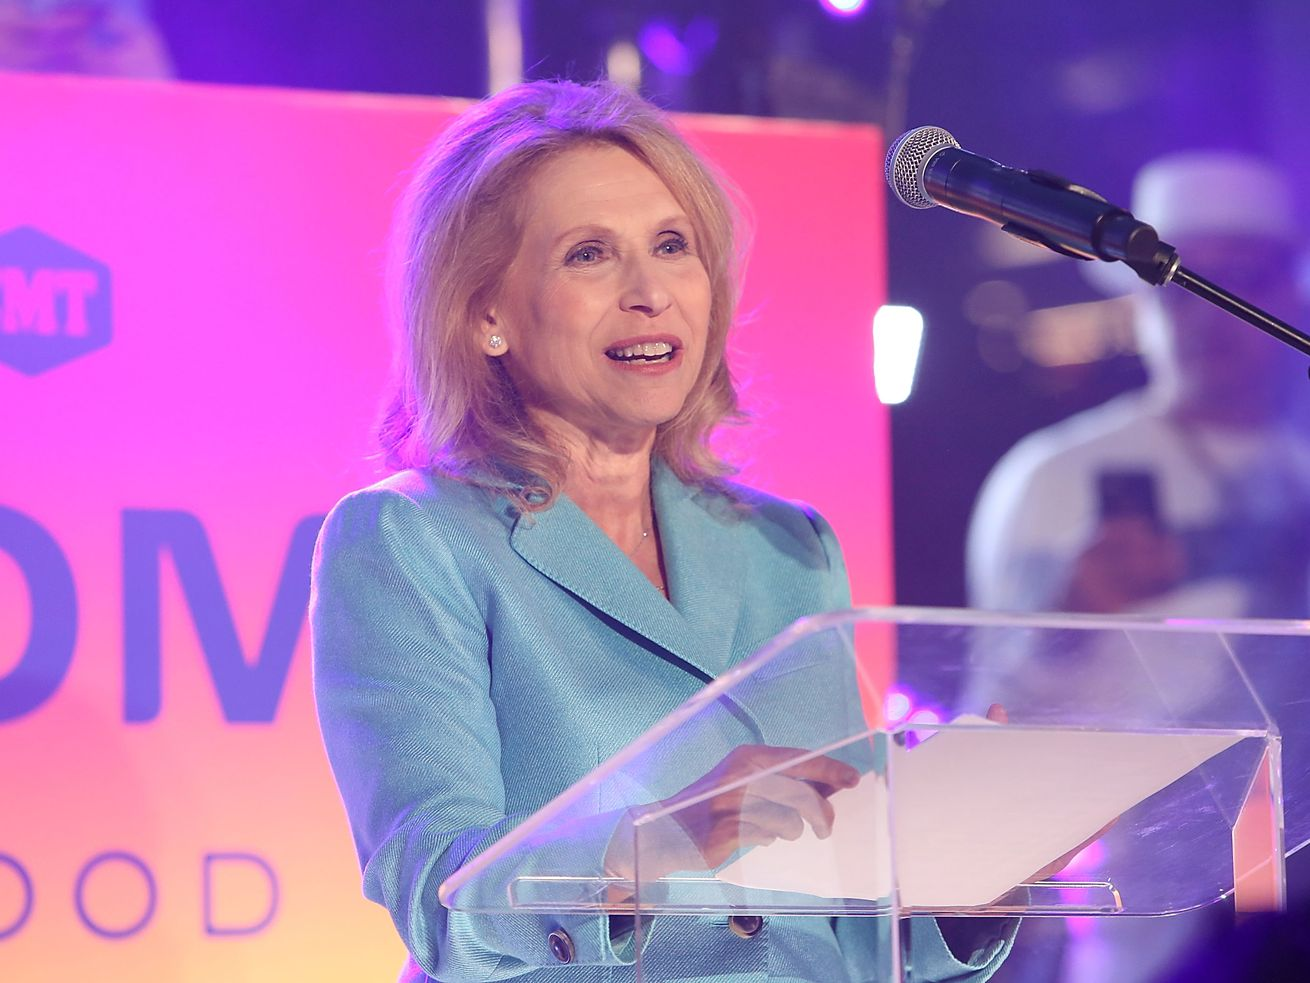 Viacom executive Shari Redstone onstage behind a podium.